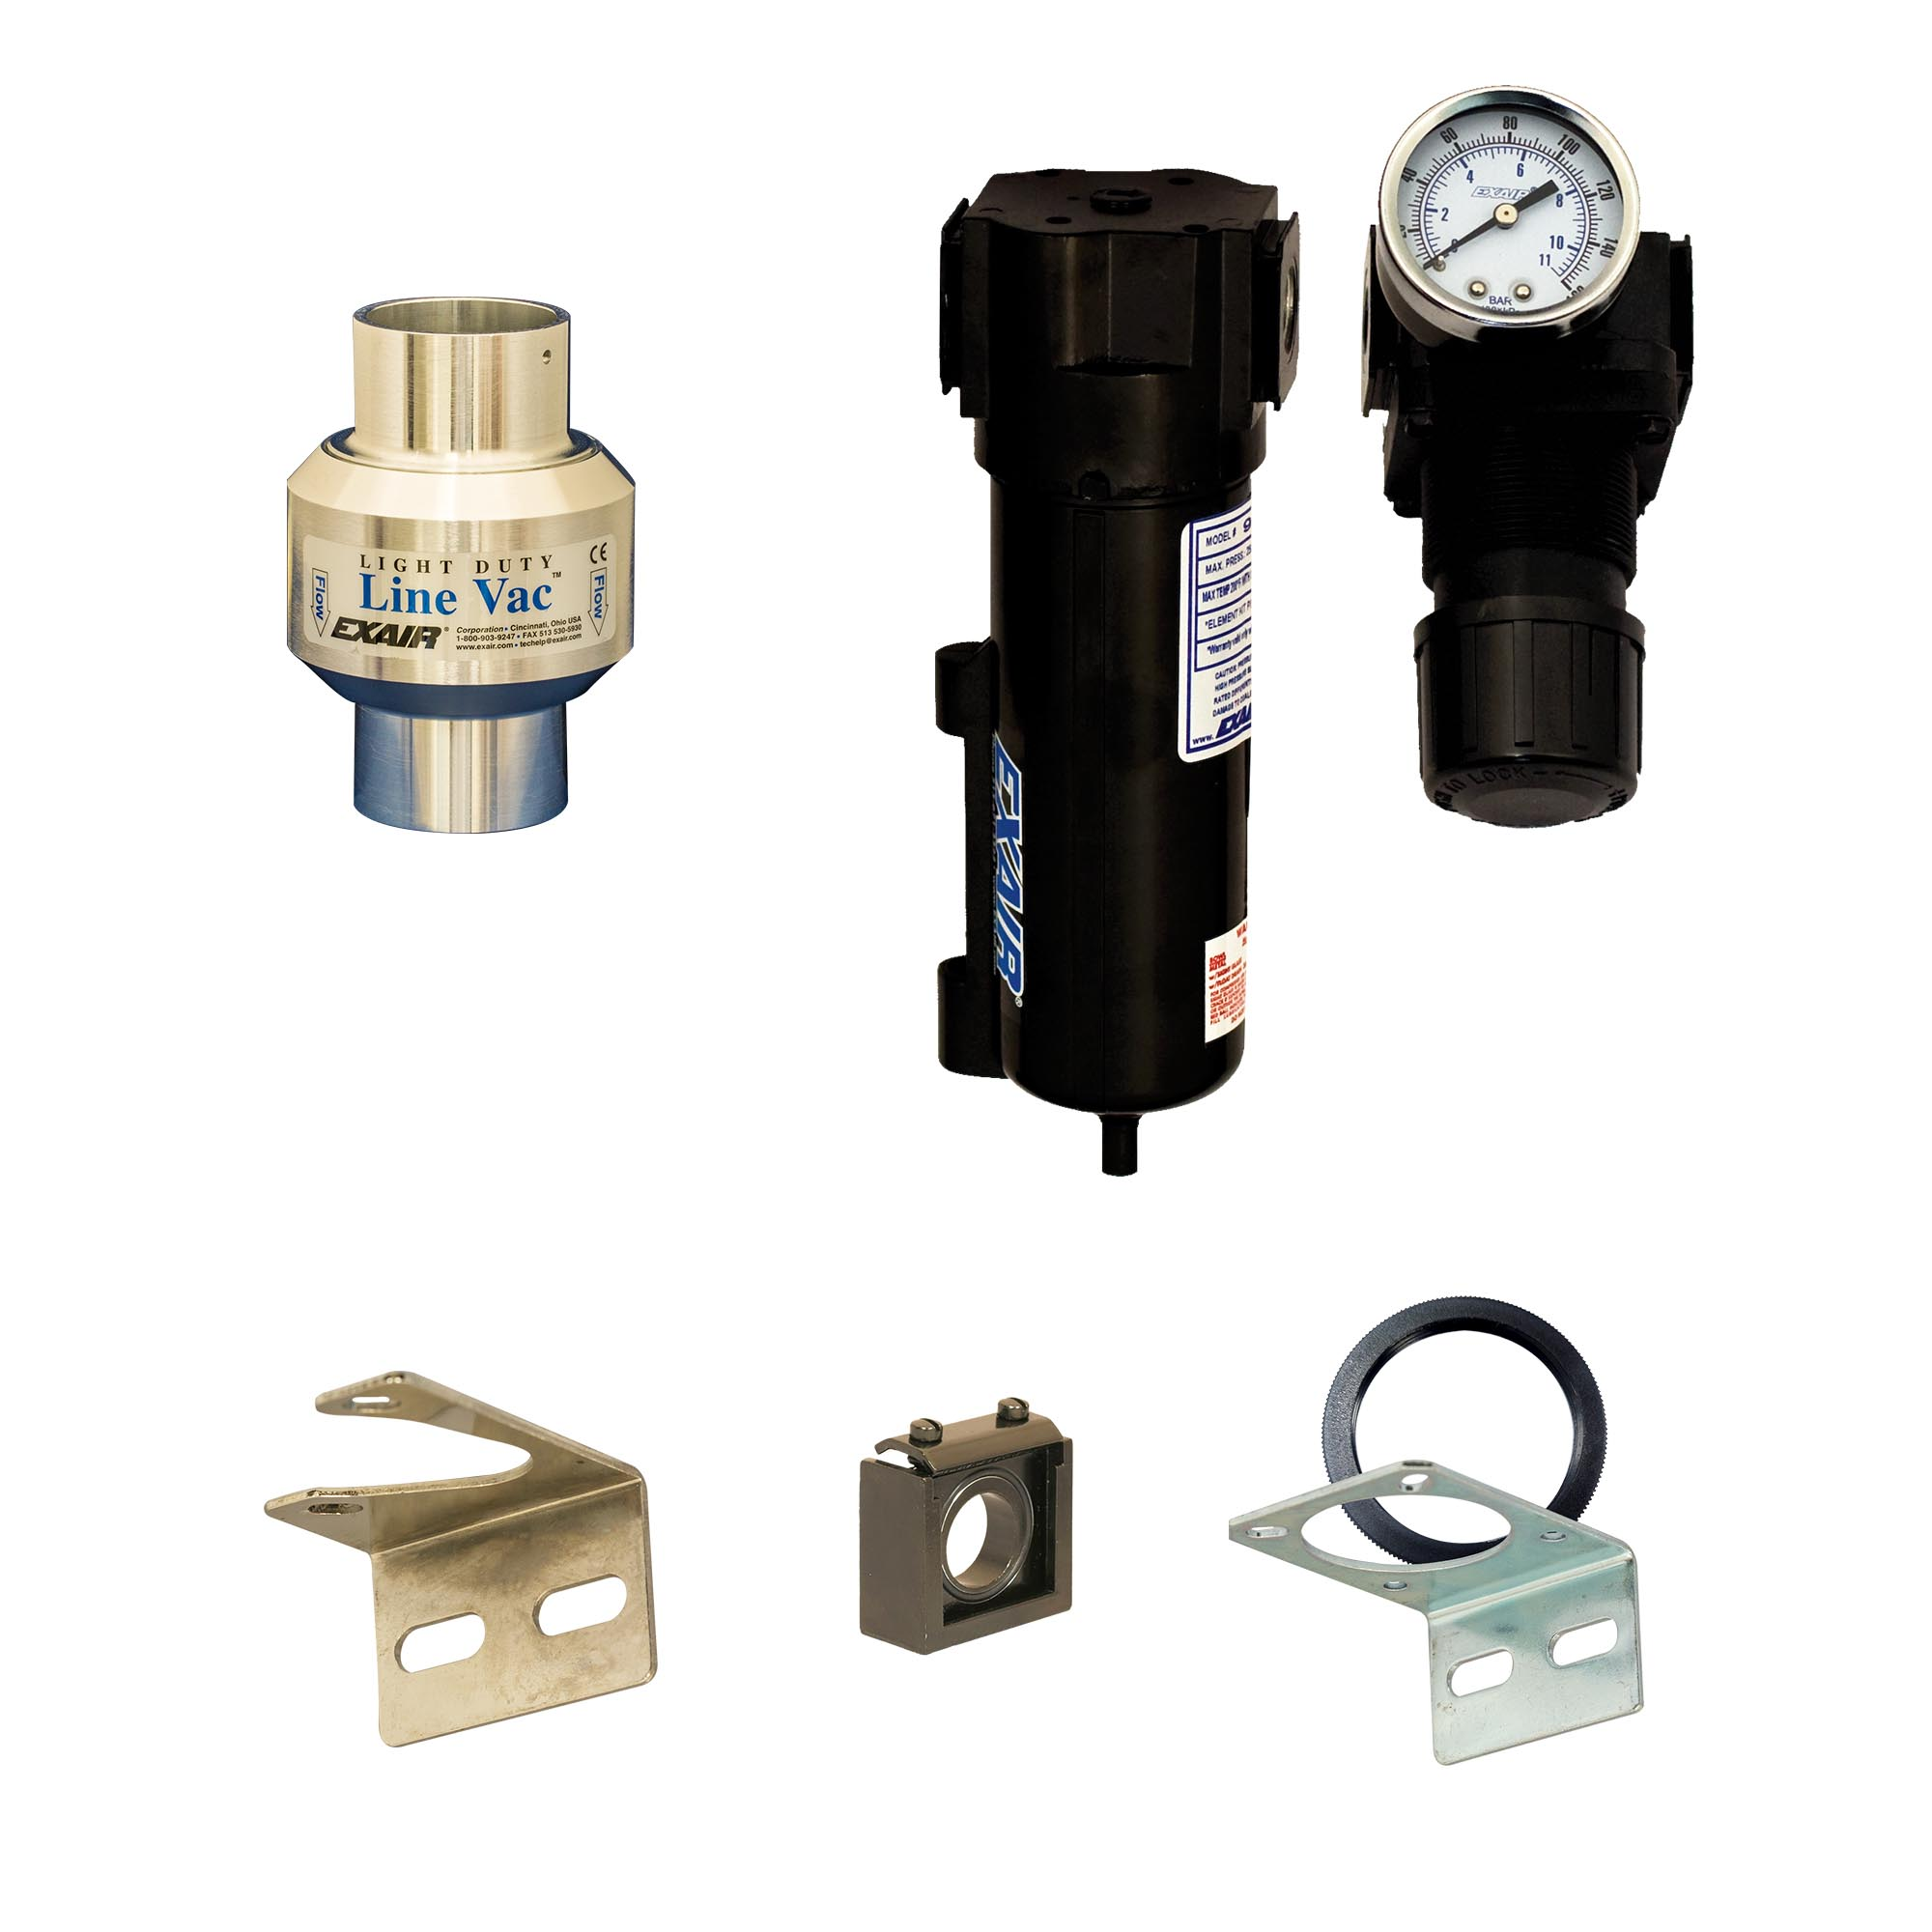 Light Duty Line Vac with filter separator and pressure regulator